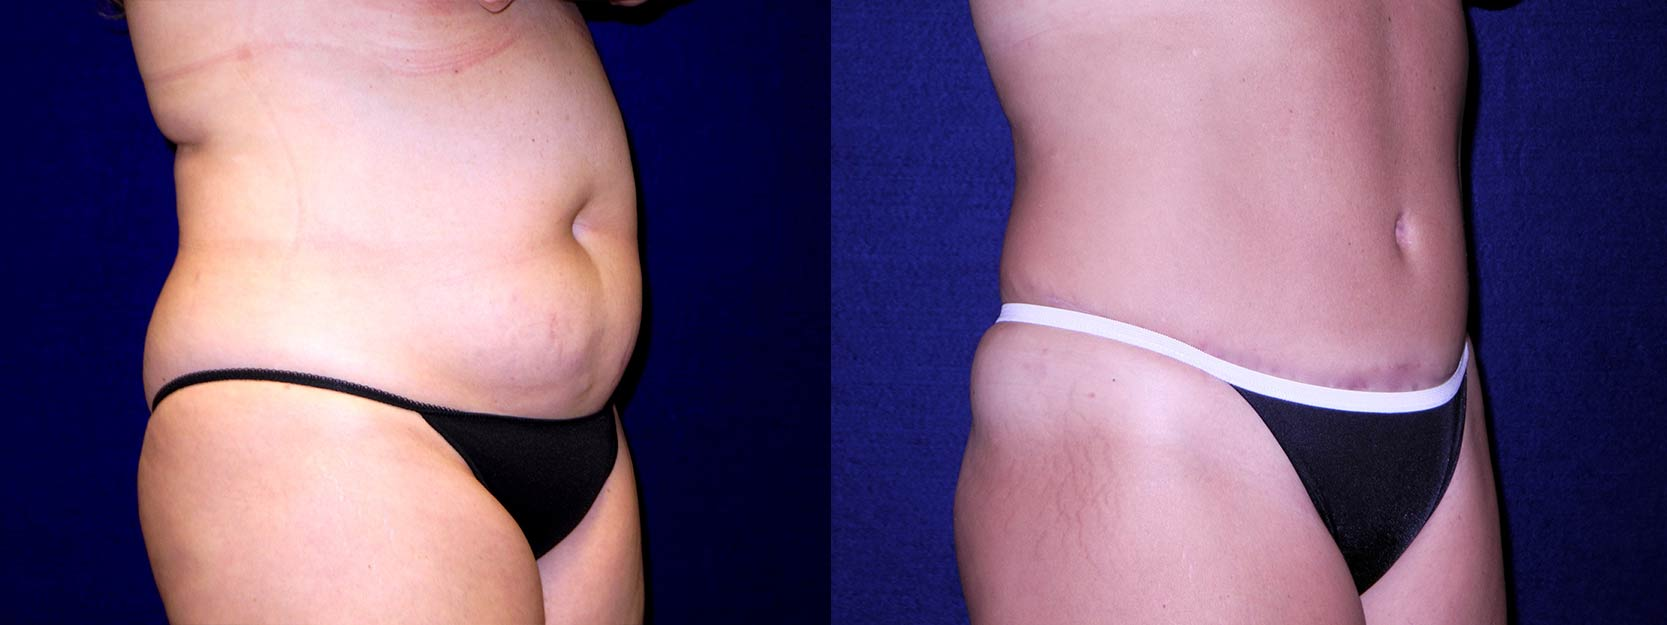 Right 3/4 View - Tummy Tuck After Pregnancy